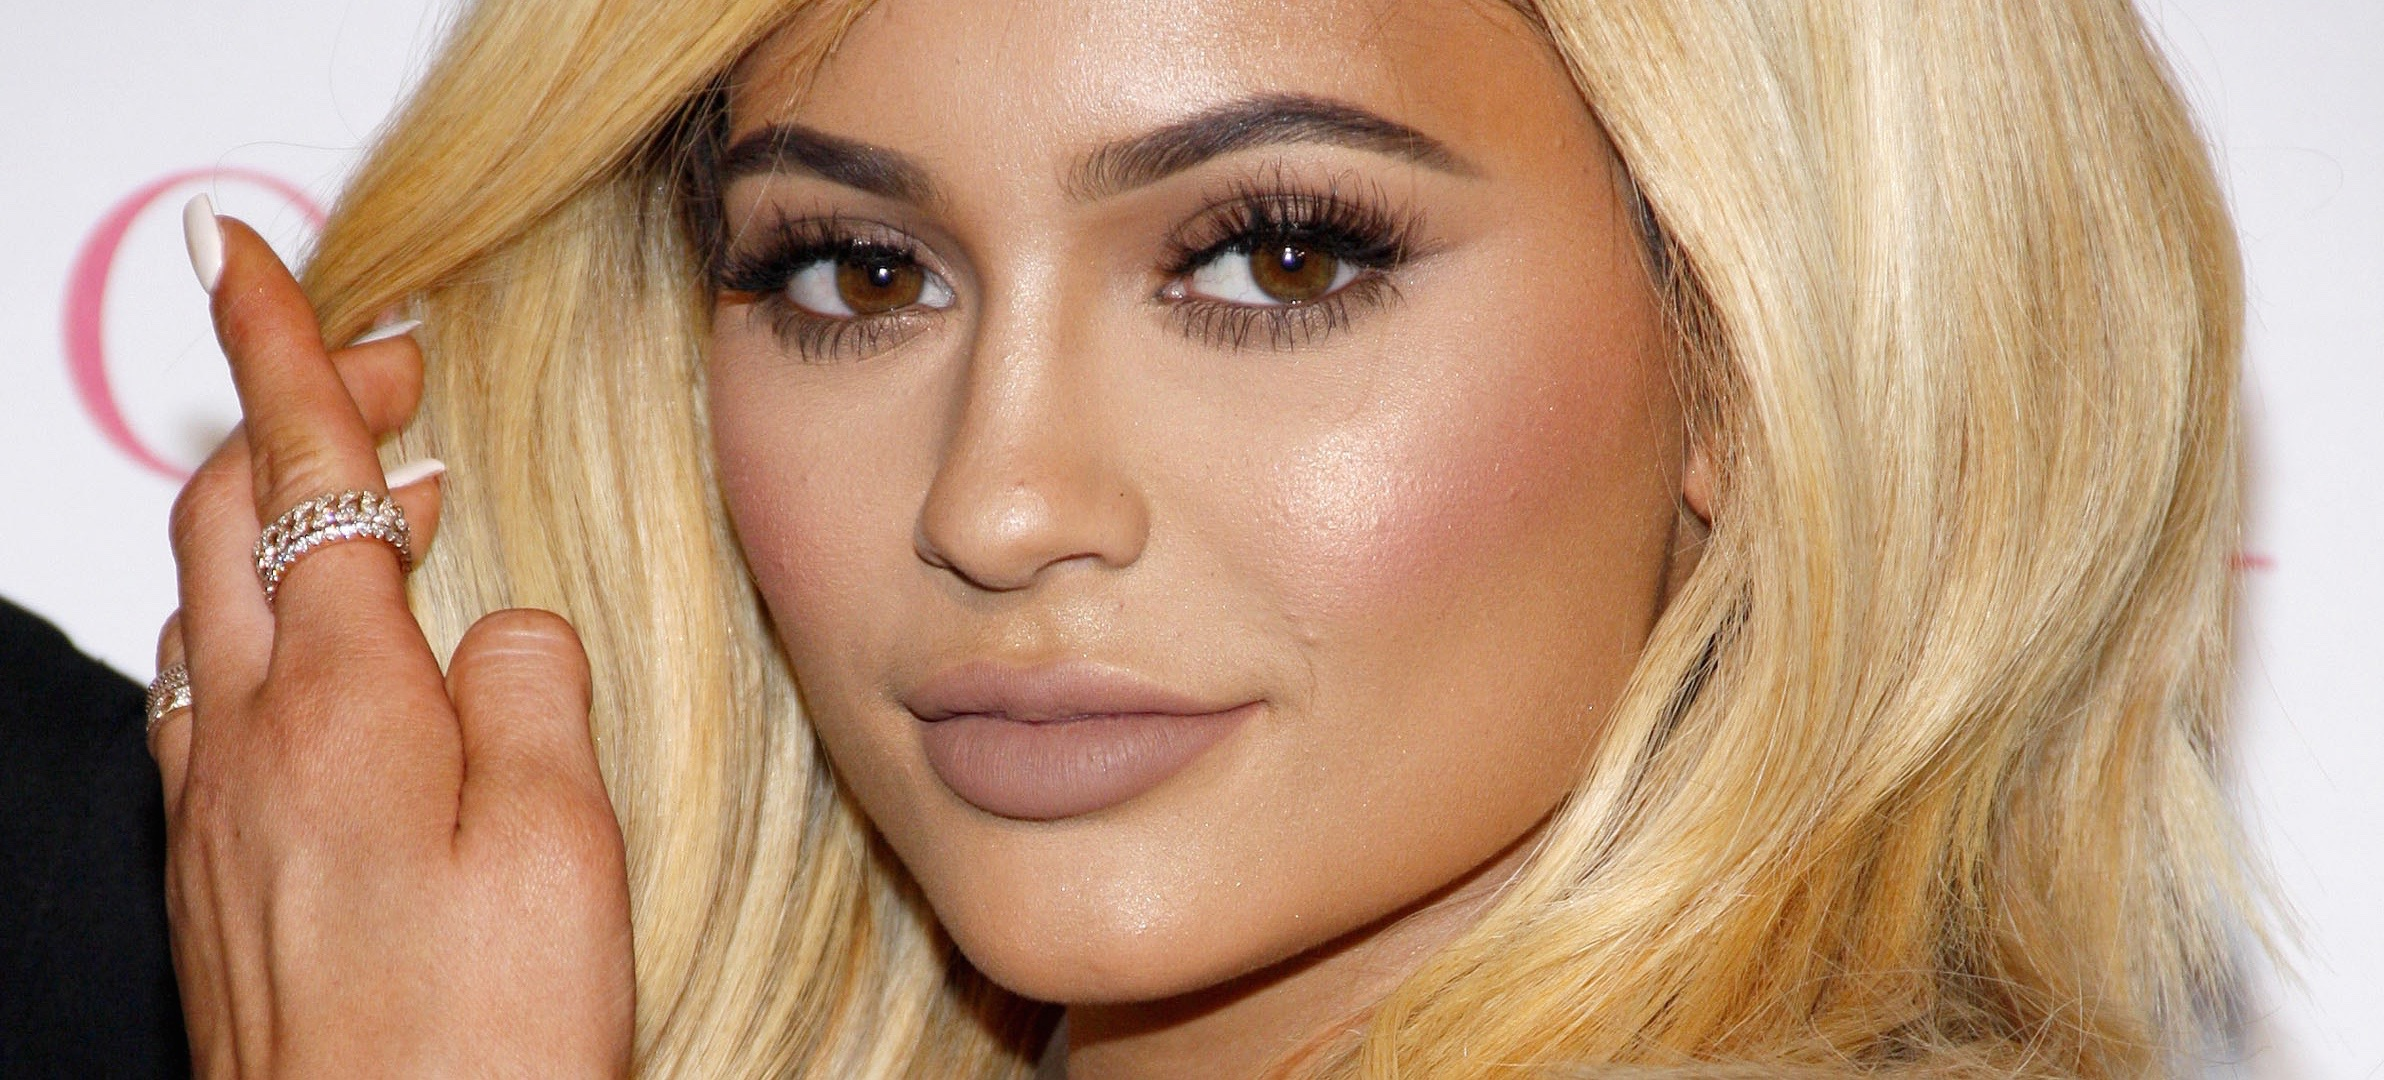 5 Game-Changing Beauty Hacks From Kylie Jenner's App